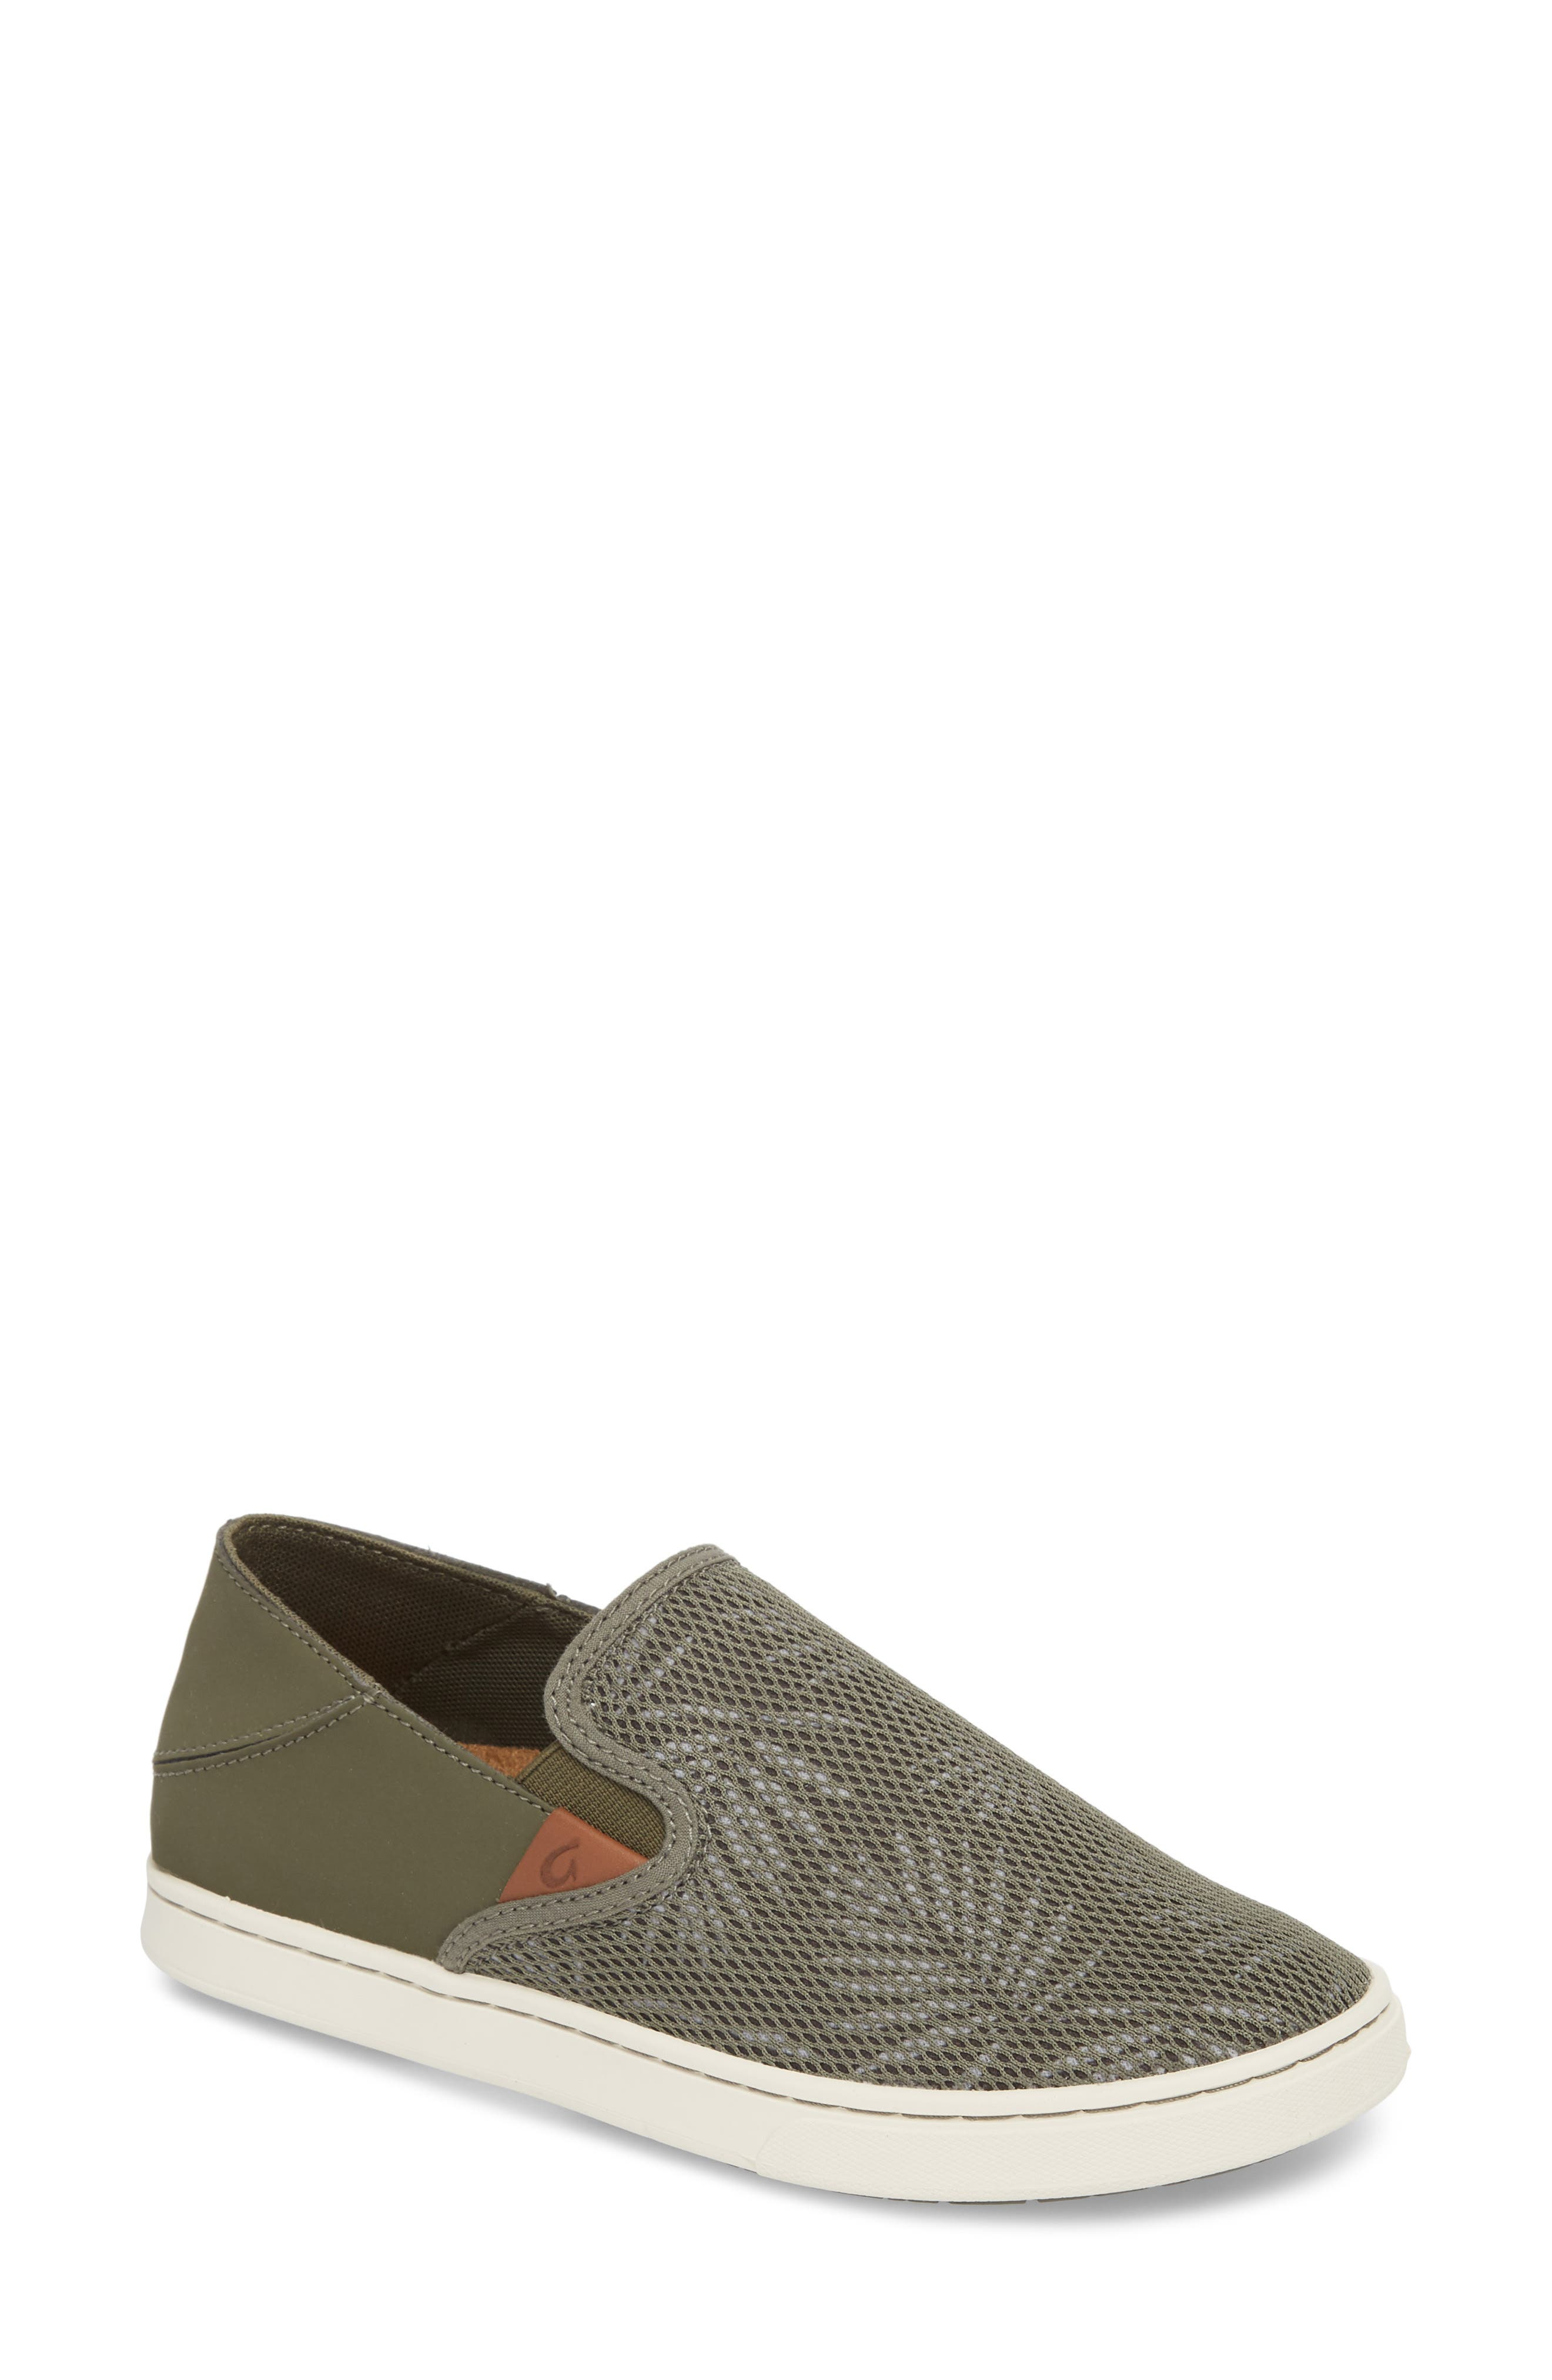 'Pehuea' Slip-On Sneaker,                             Main thumbnail 1, color,                             Dusty Olive/ Palm Fabric